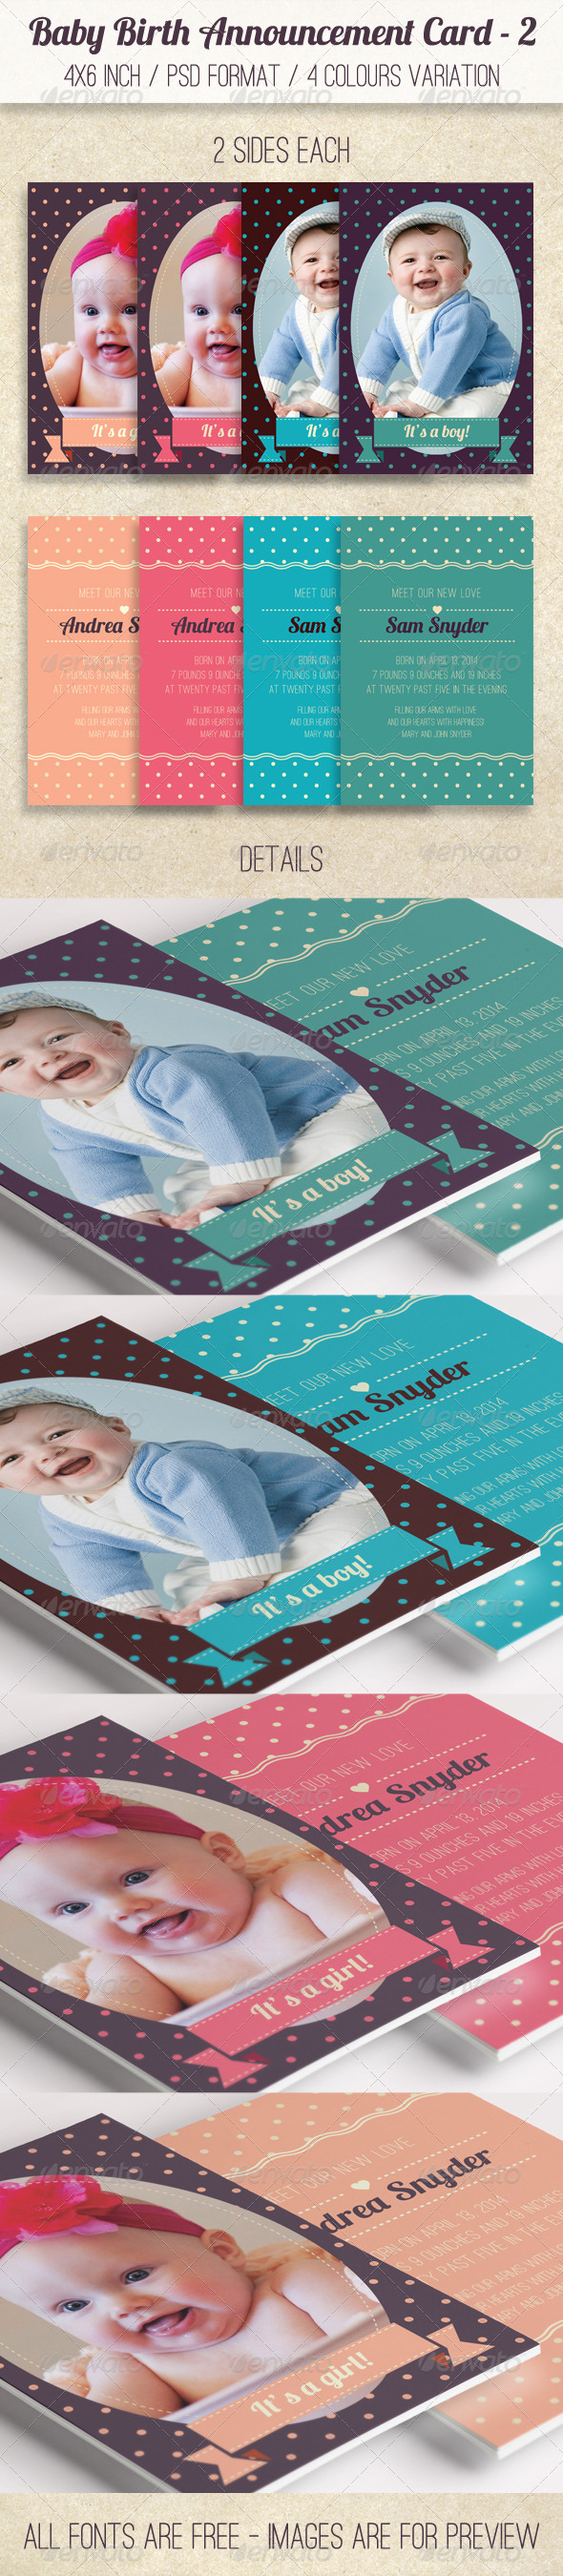 Baby Birth Announcement Card 2